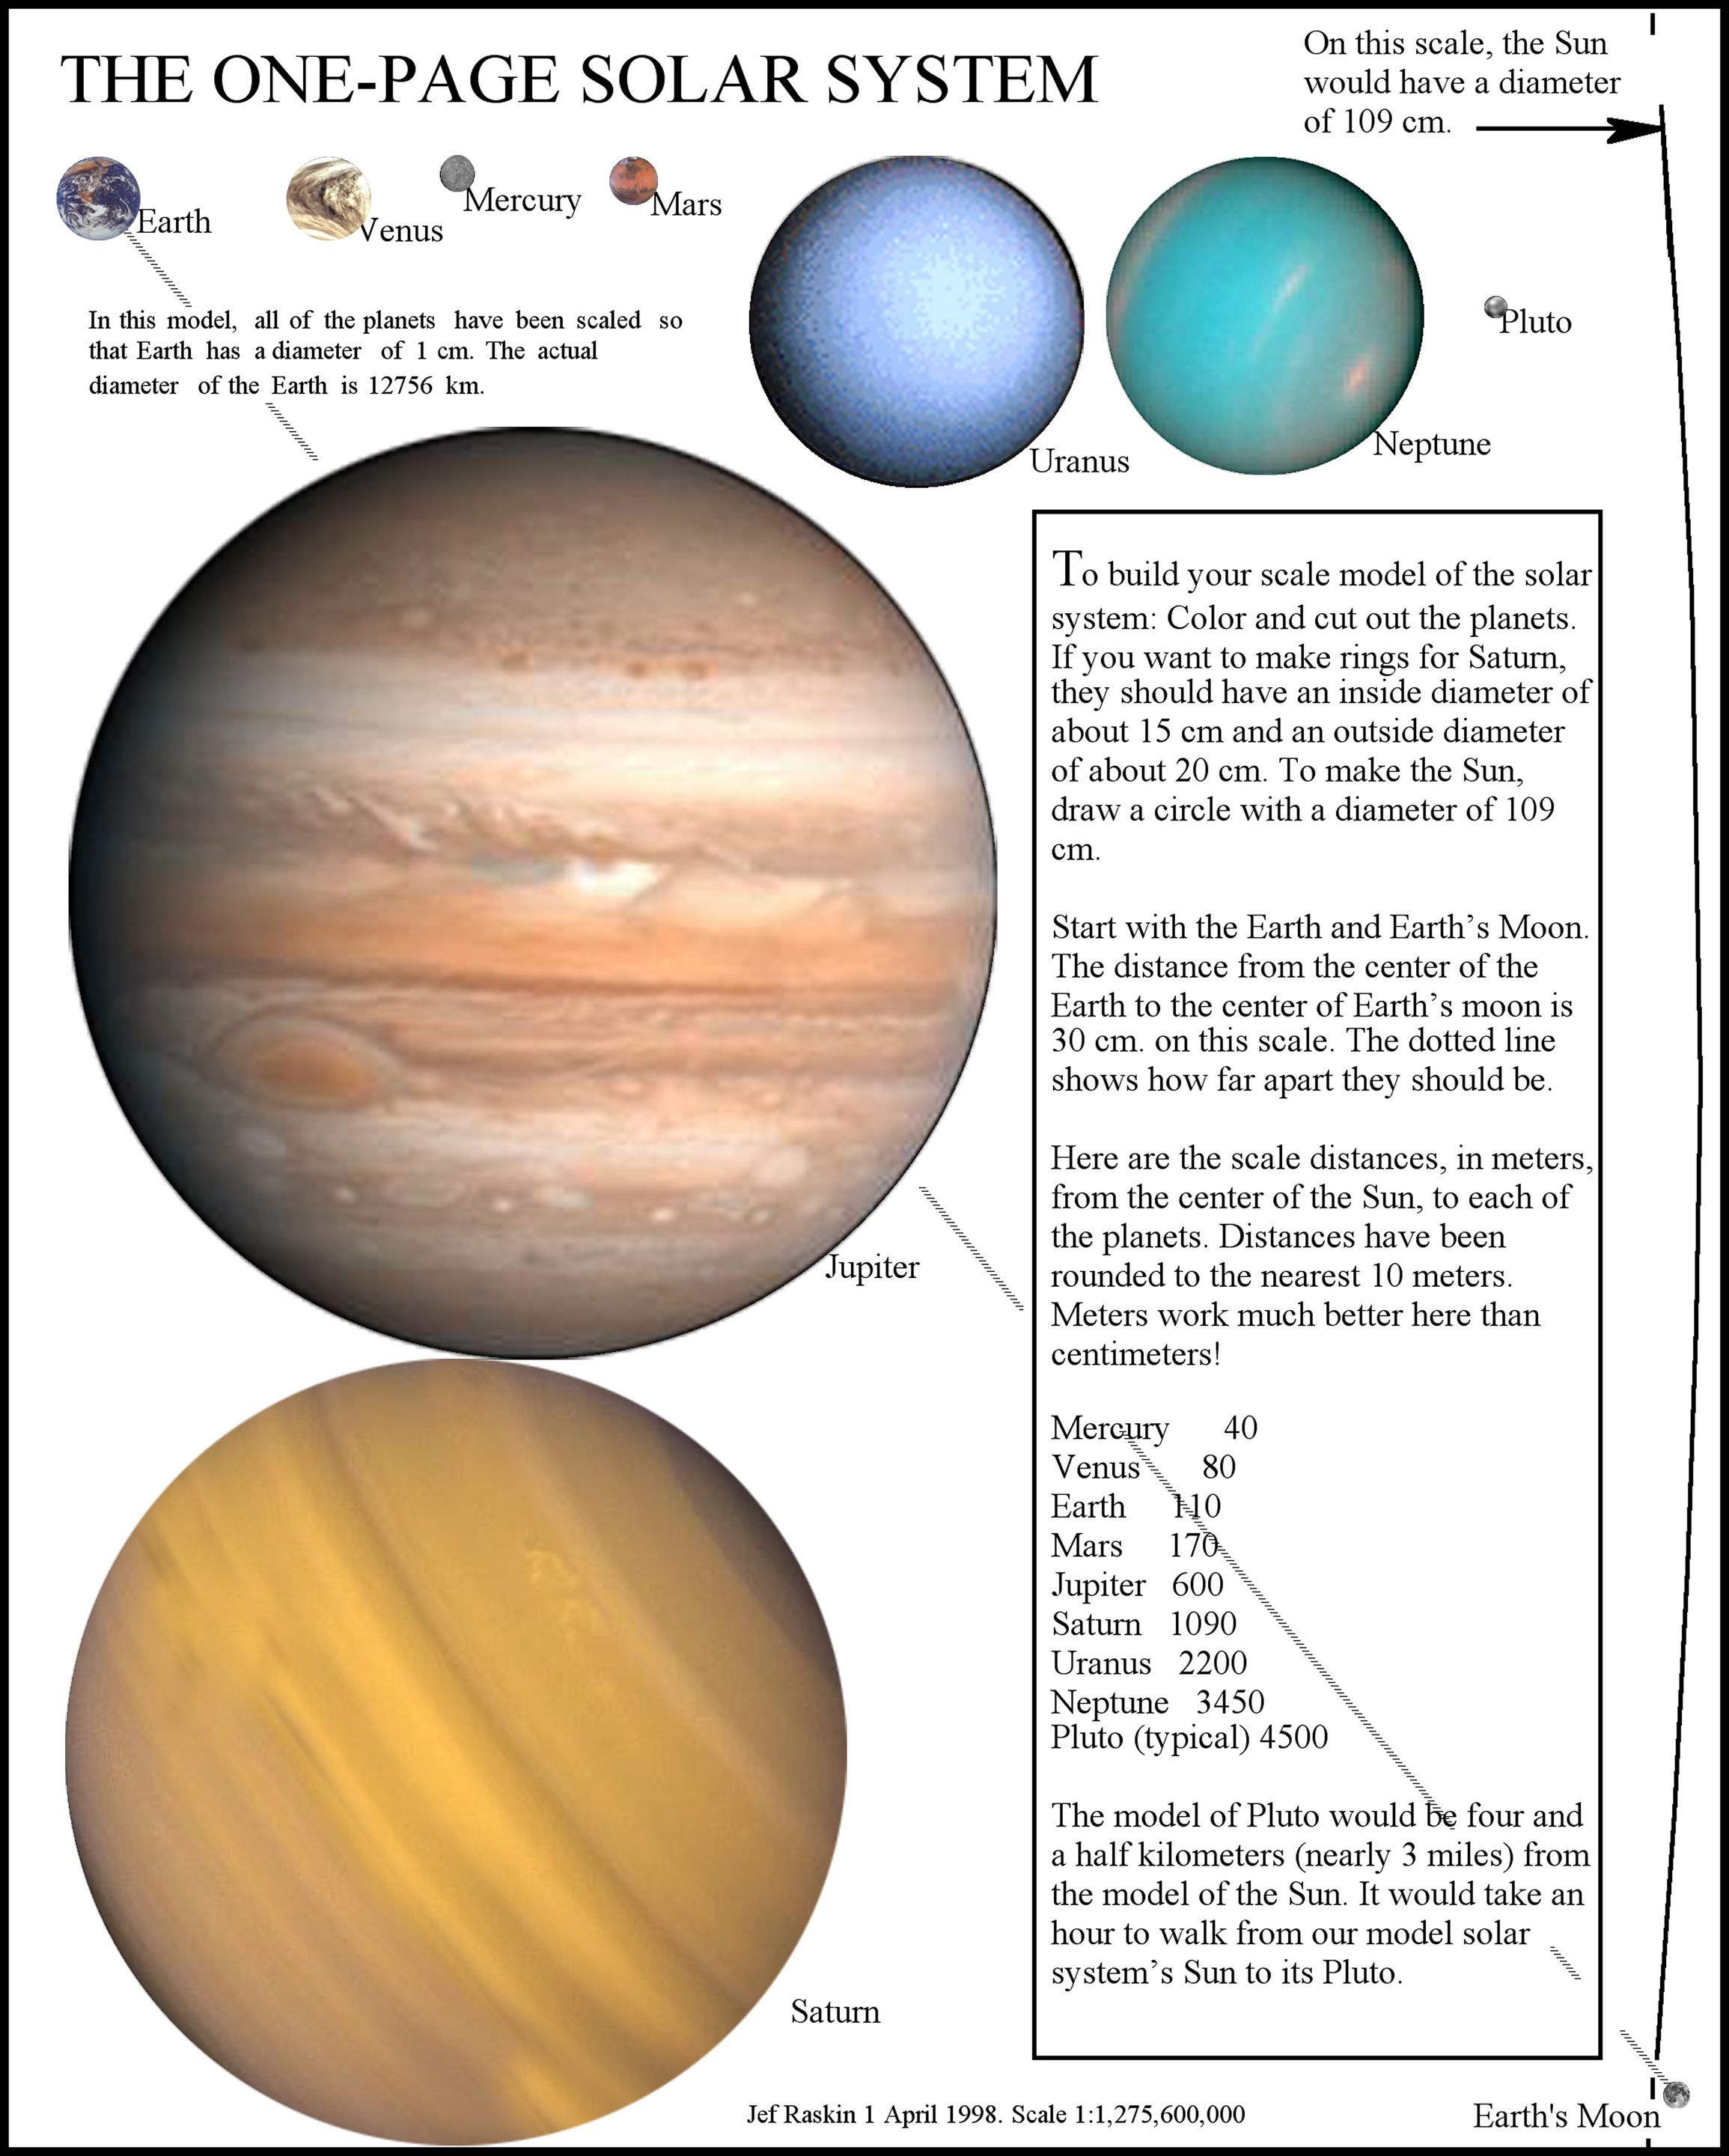 One Page Solar System 1 155 1 440 Pixels